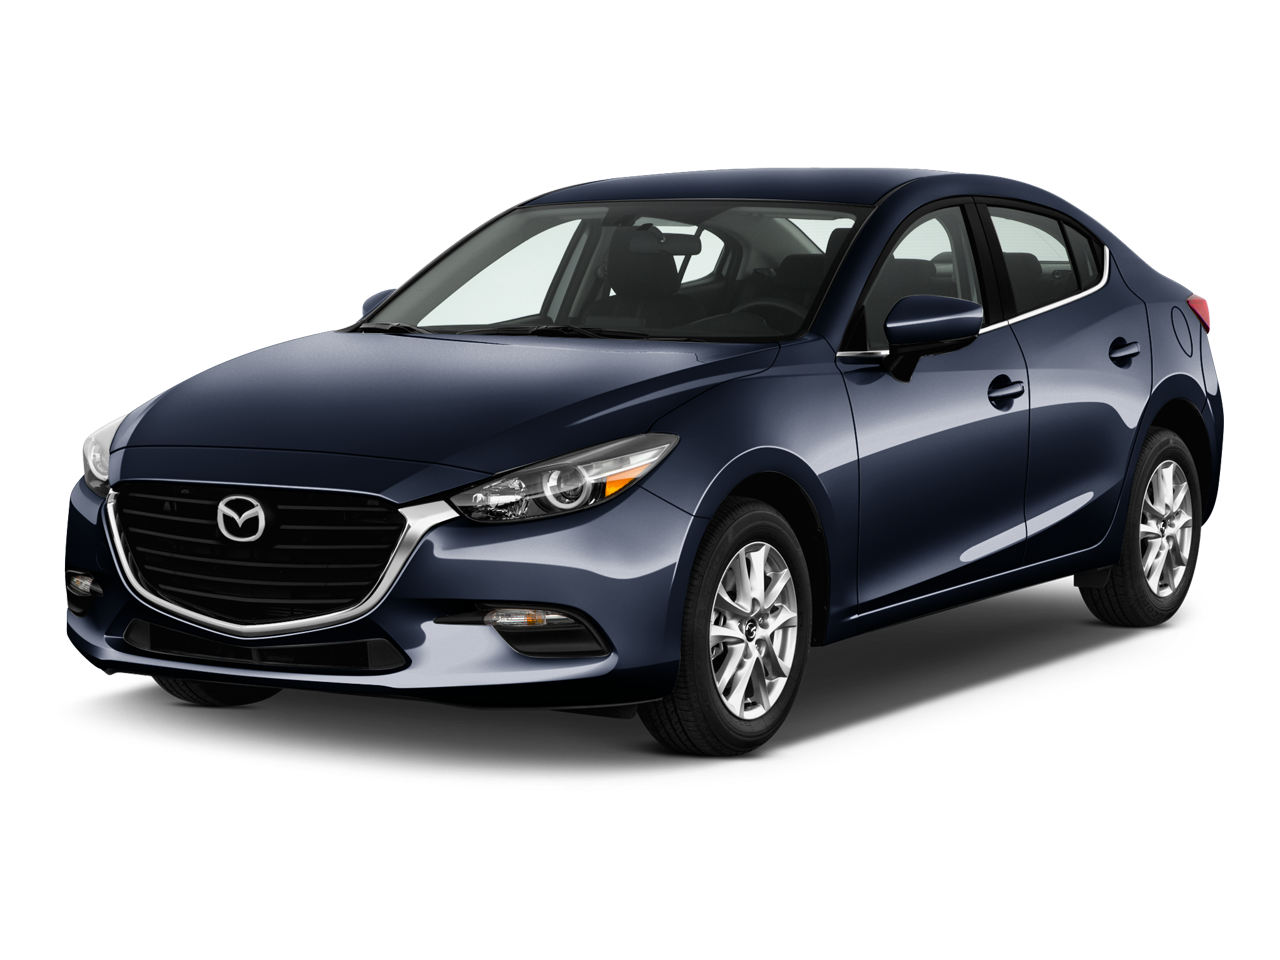 new 2018 mazda mazda3 brighton mi brighton mazda. Black Bedroom Furniture Sets. Home Design Ideas